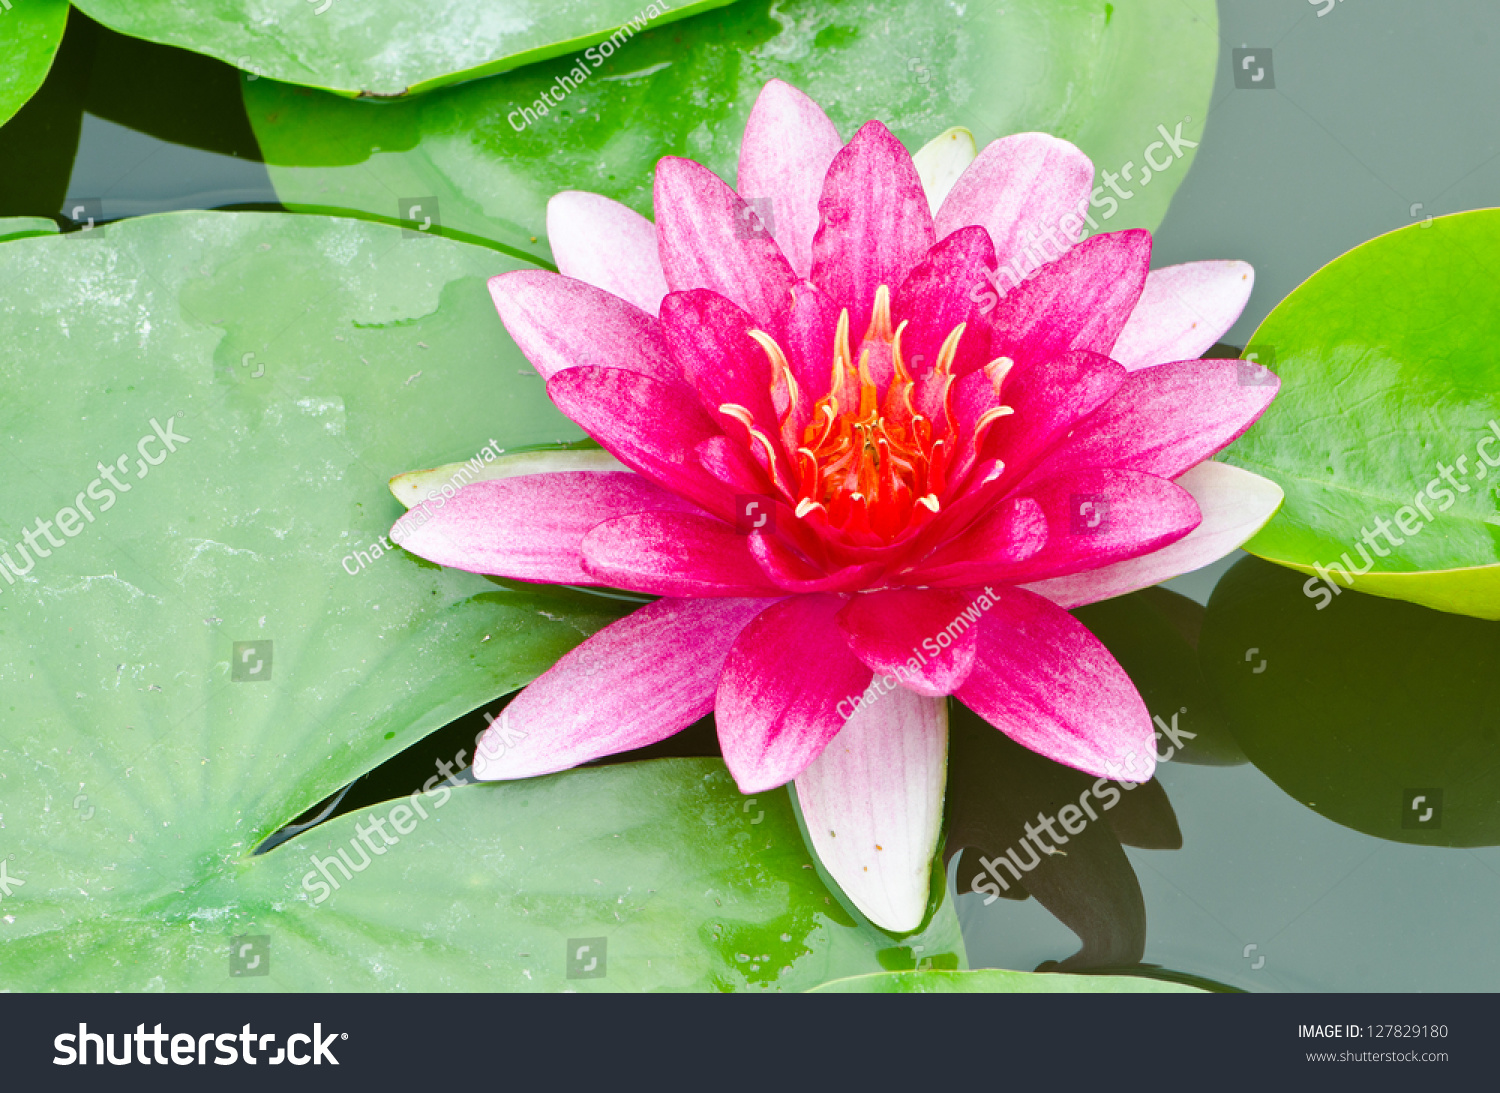 Red Lotus Flower Peaceful Pond Stock Photo 127829180 ...